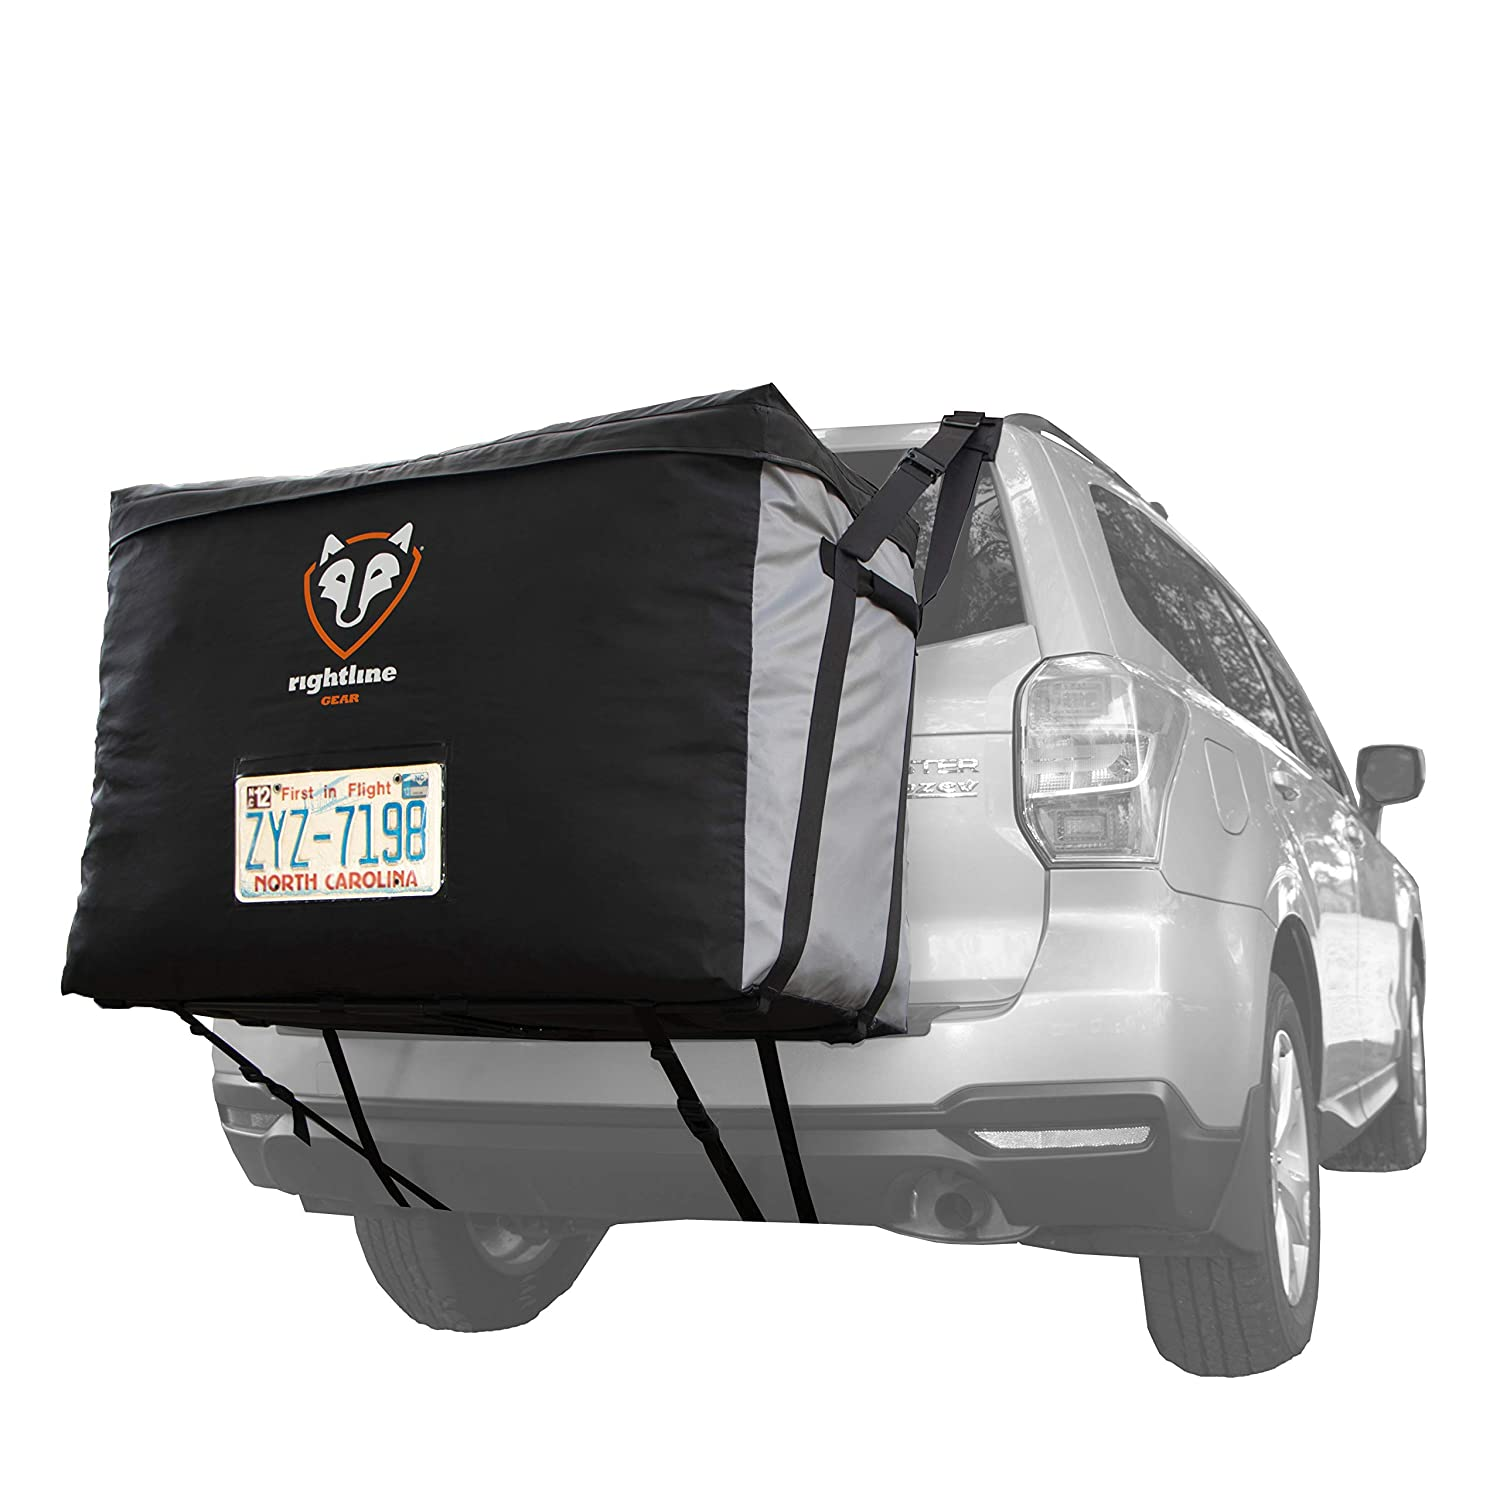 Rightline Gear 100B90 13 cu ft 100% Waterproof, Attaches With or Without Roof Rack